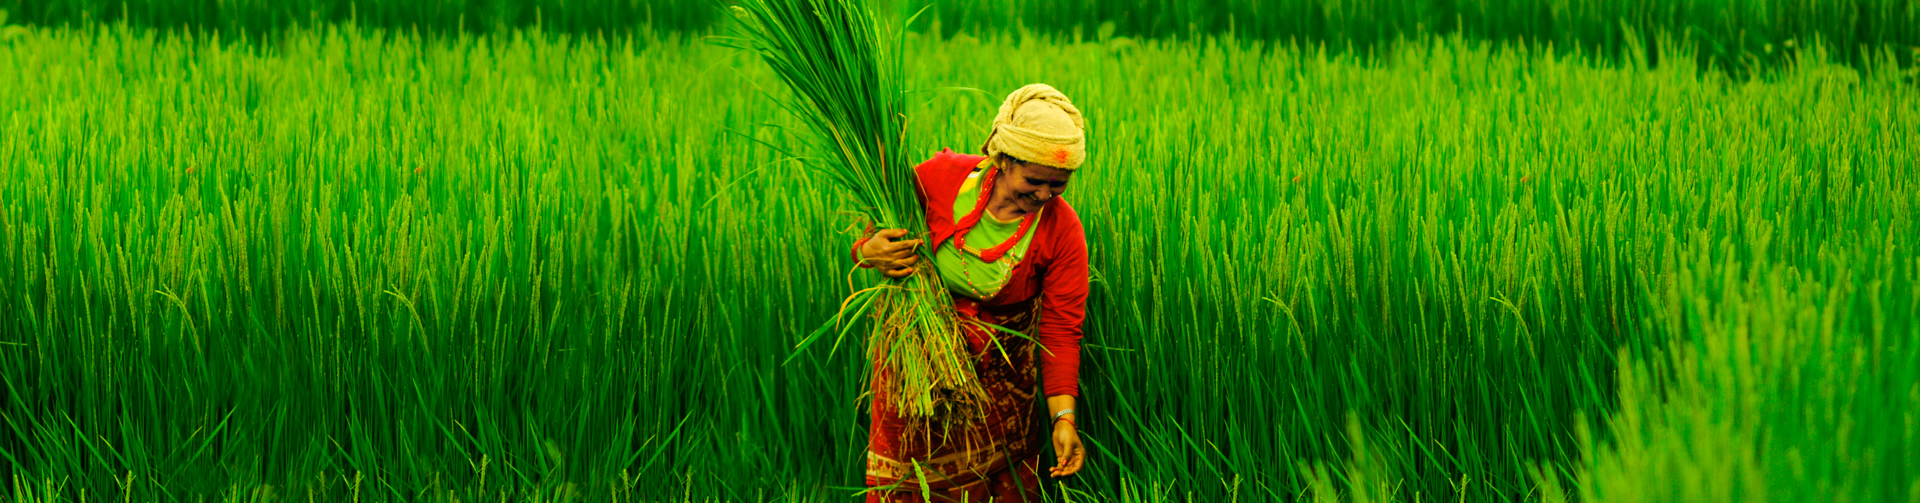 Agricultural Transformation in Nepal: Trends, Prospects and Policy Options